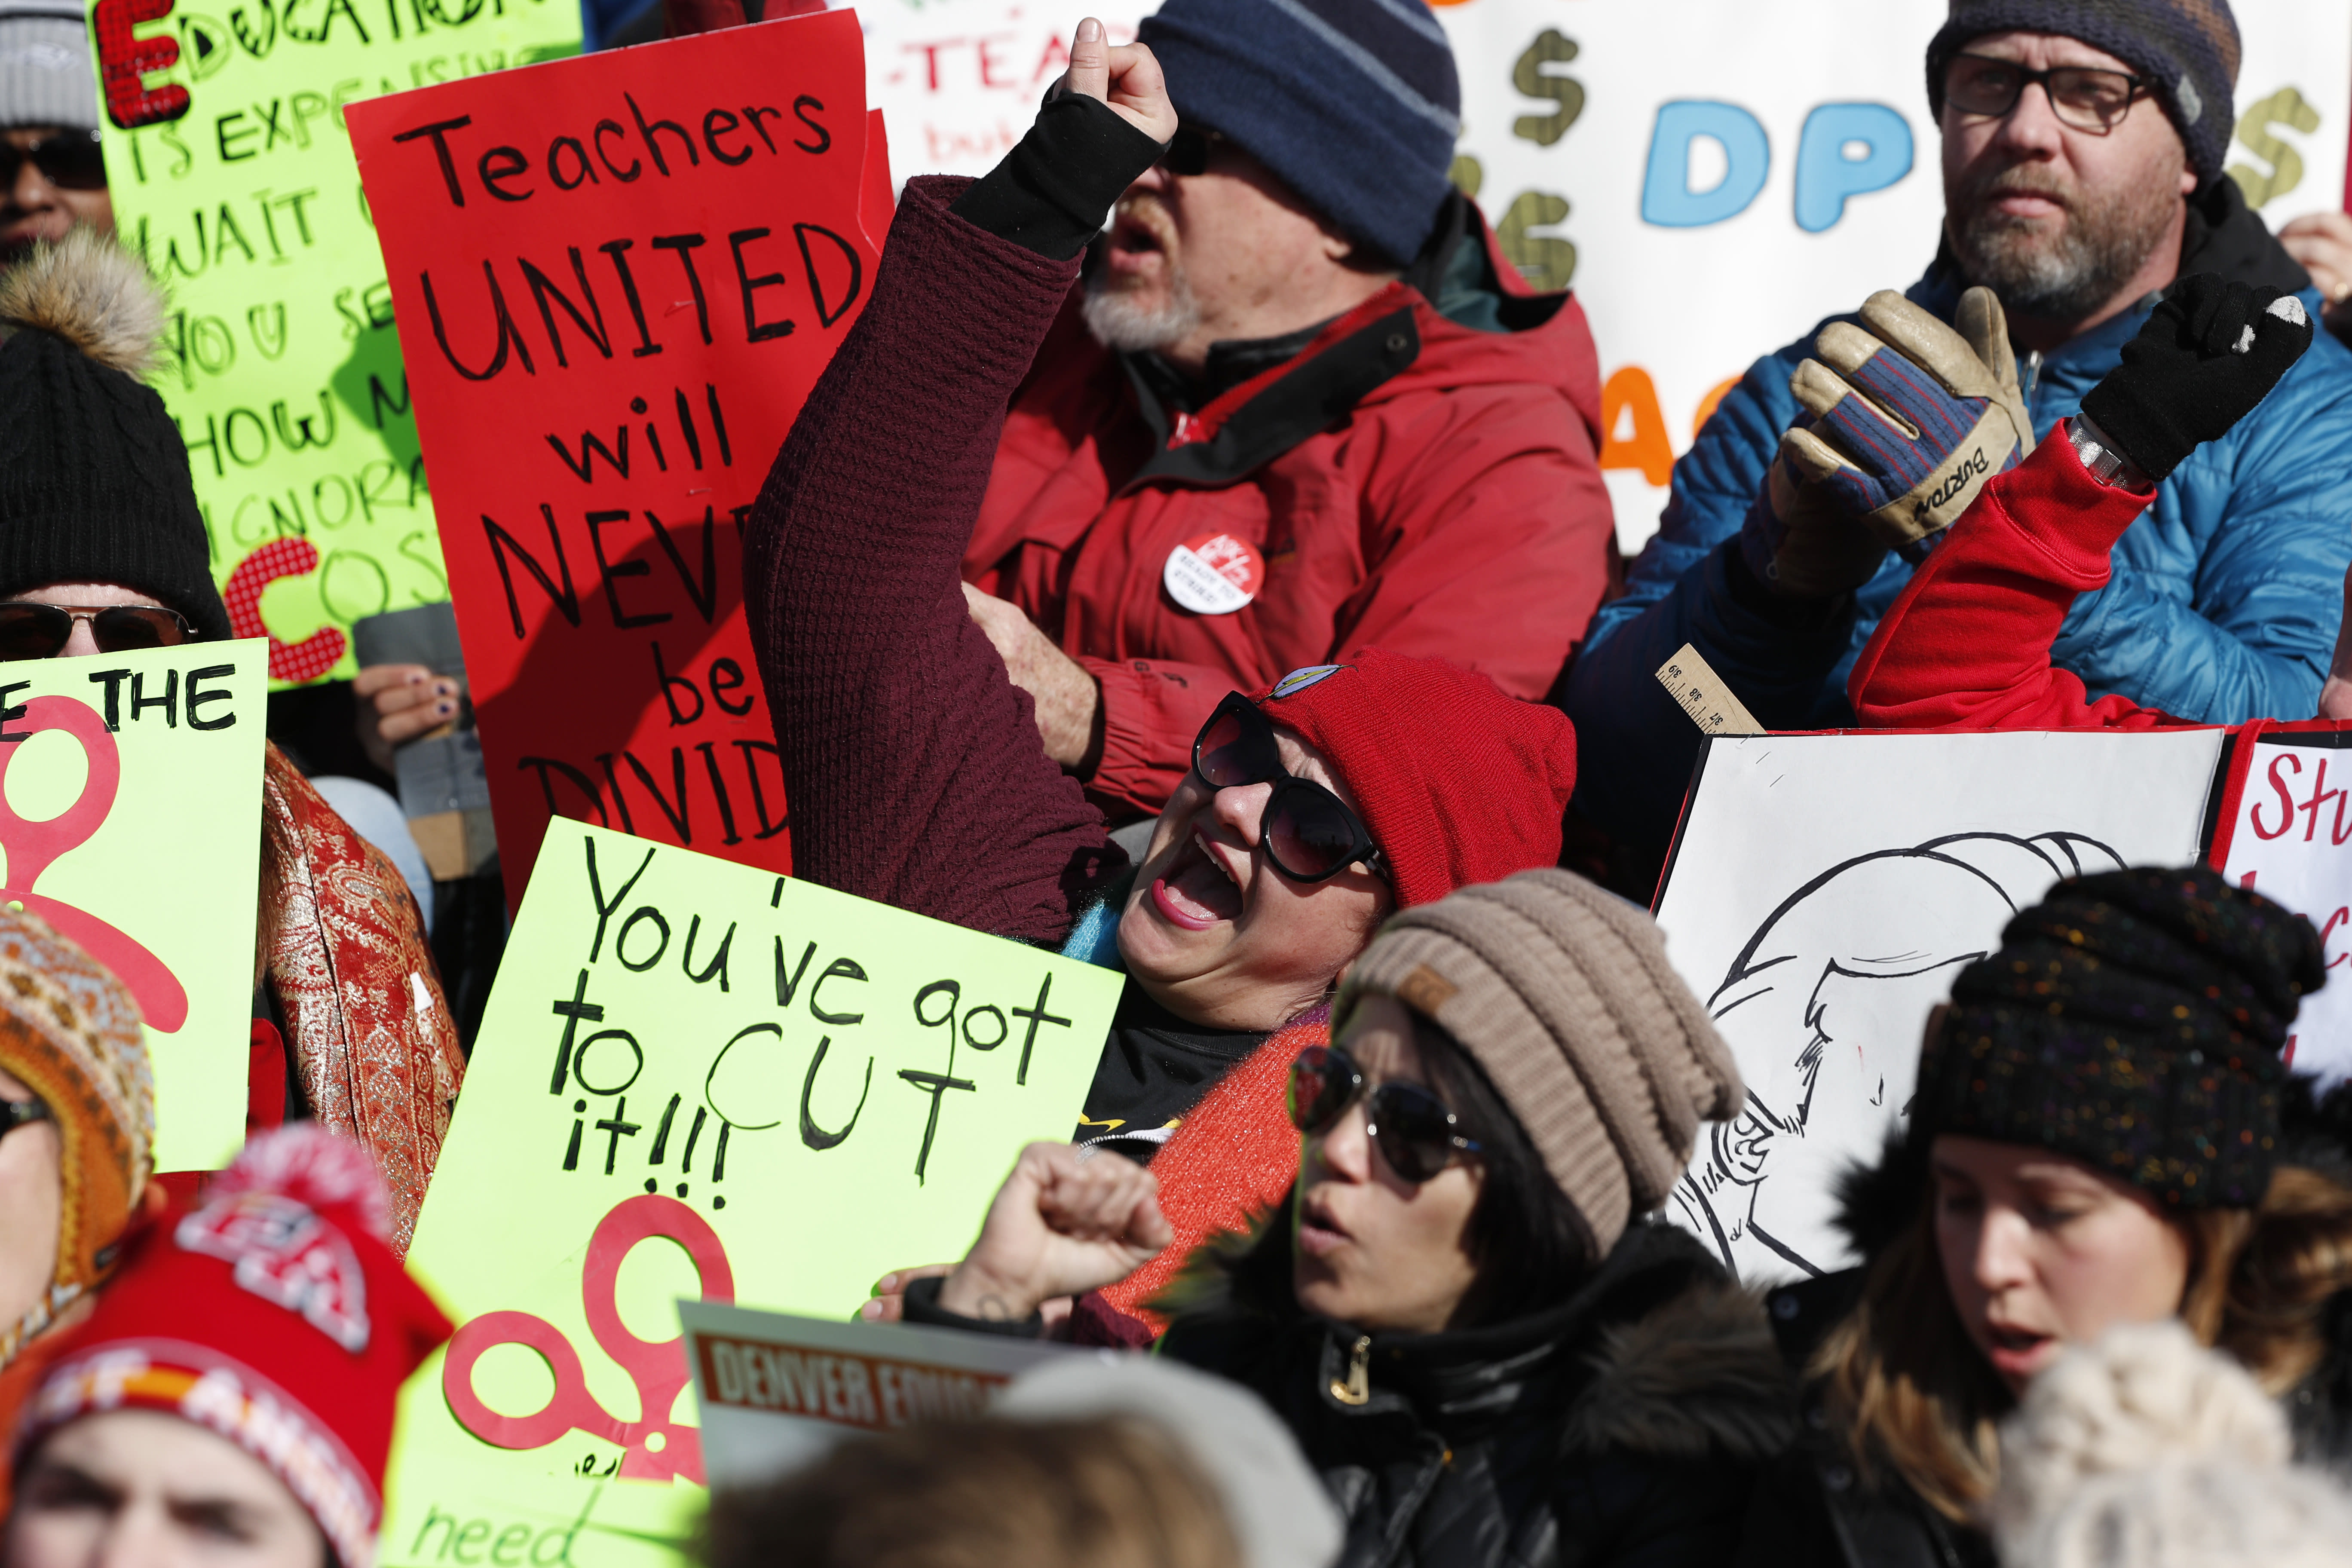 Teachers chant in support during a strike rally on the west steps of the State Capitol Monday, Feb. 11, 2019, in Denver. The strike is the first for teachers in Denver since 1994 and centers on base pay. (AP Photo/David Zalubowski)